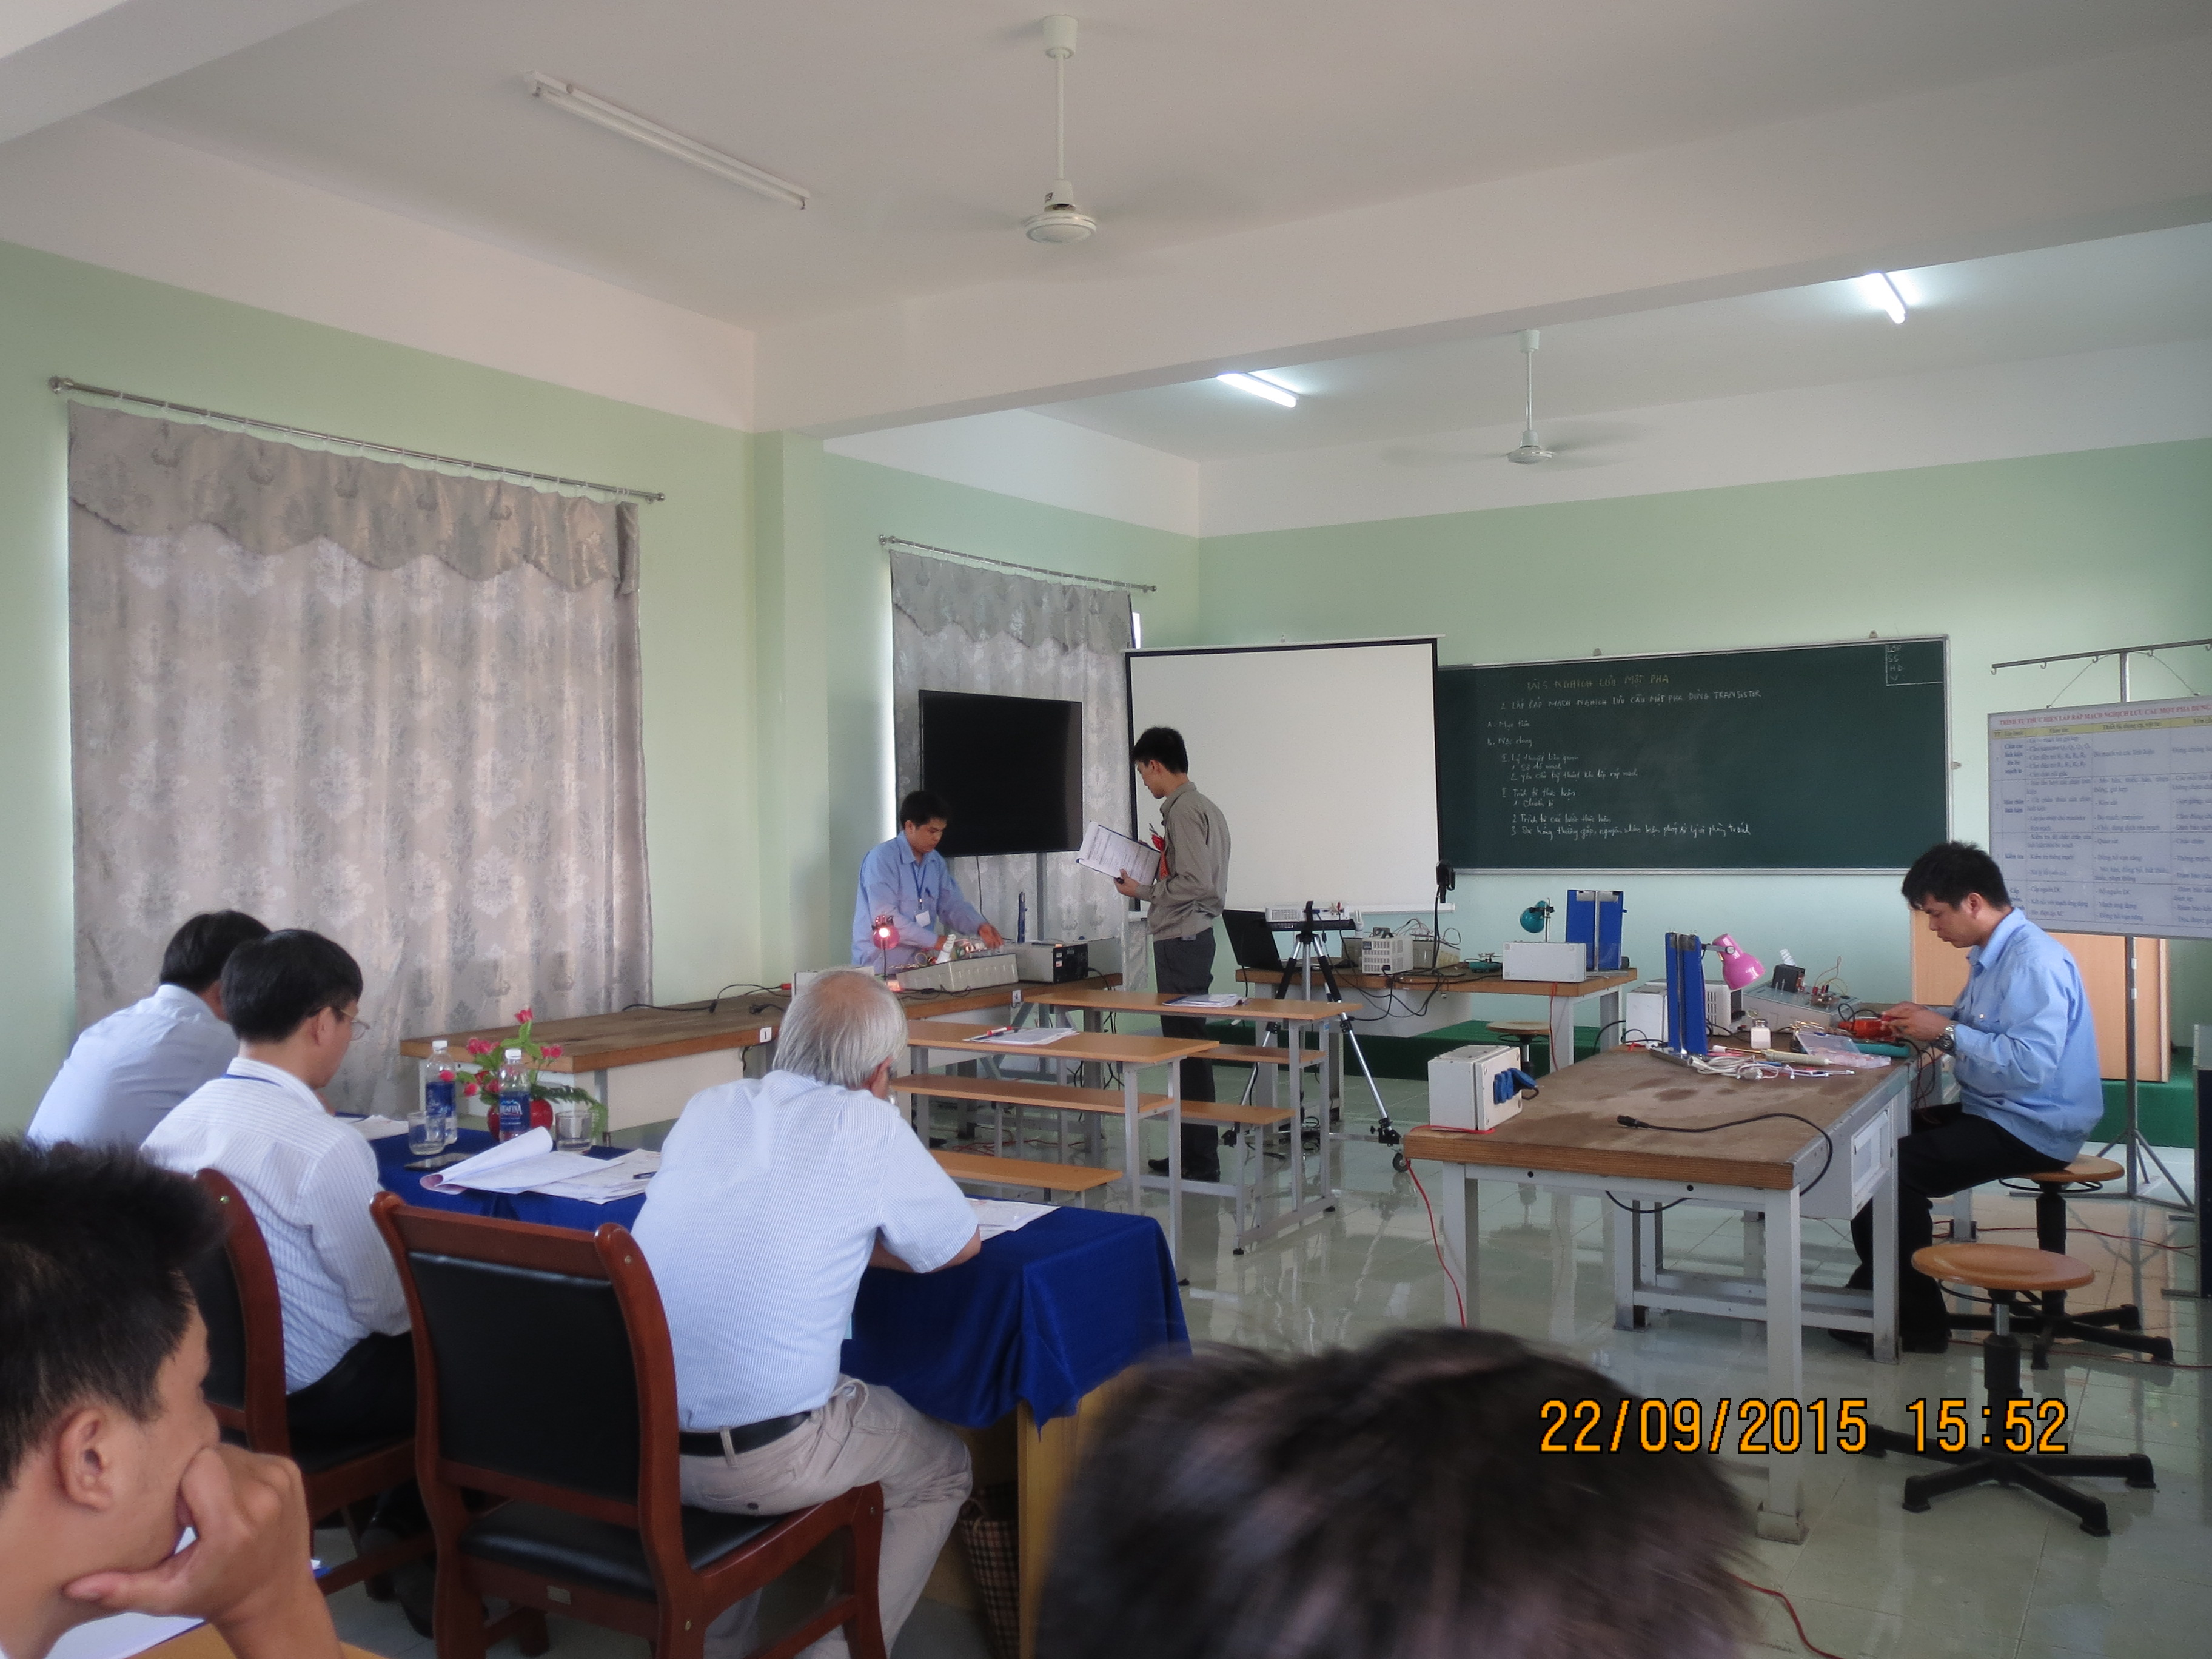 Presentation of lecture on Electronics